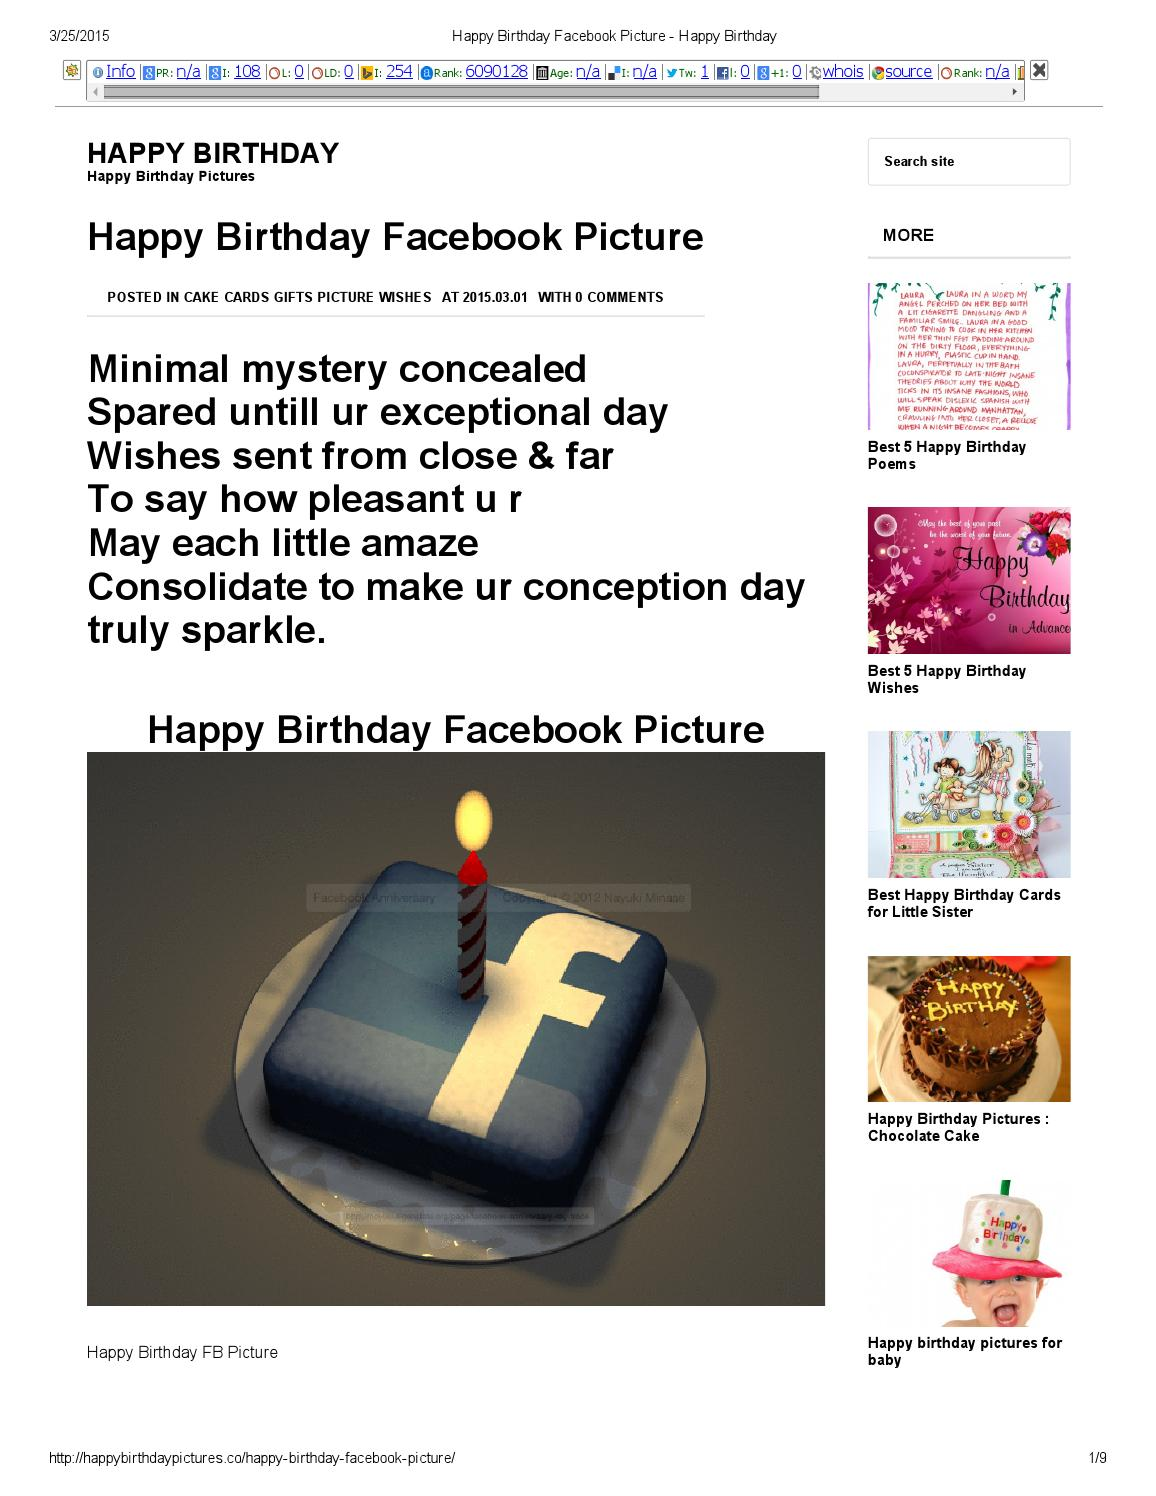 Happy Birthday Facebook Picture By Anwarul Kayum Chy